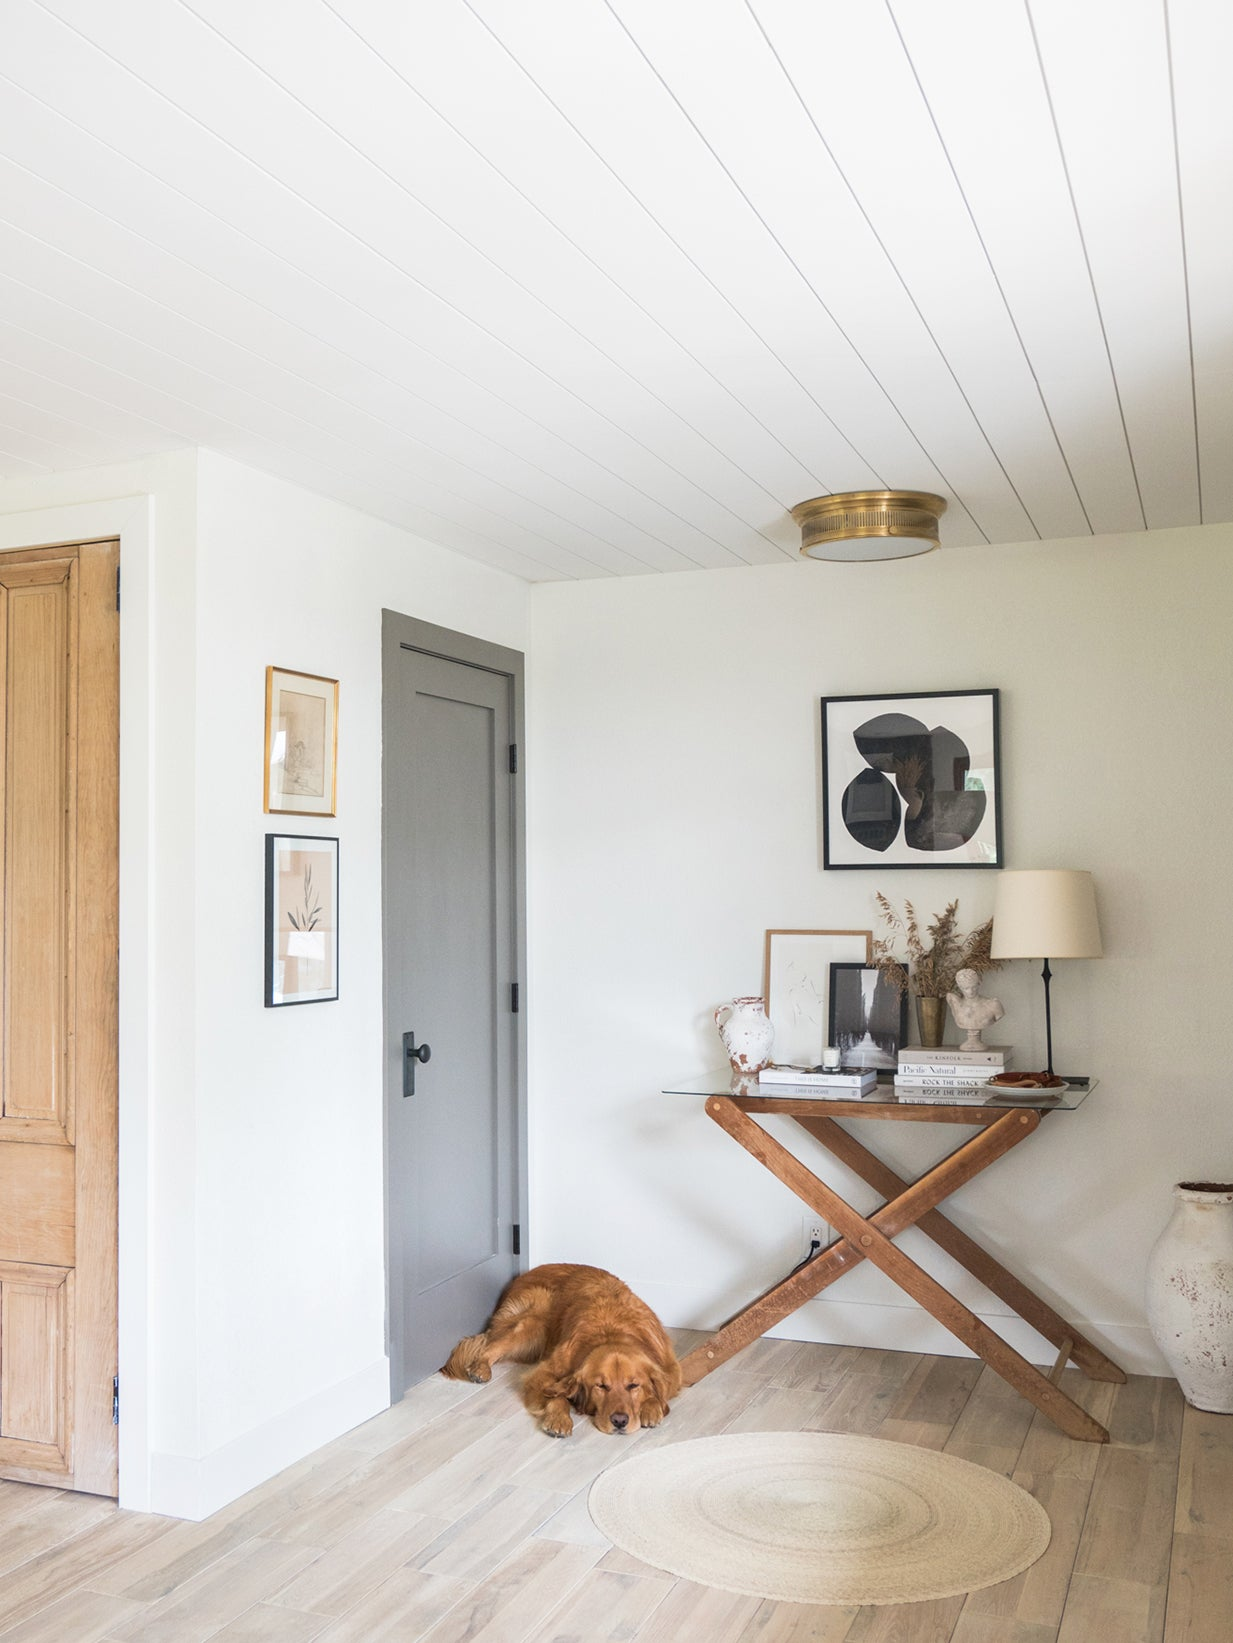 dog sleeping next to an x shaped console table